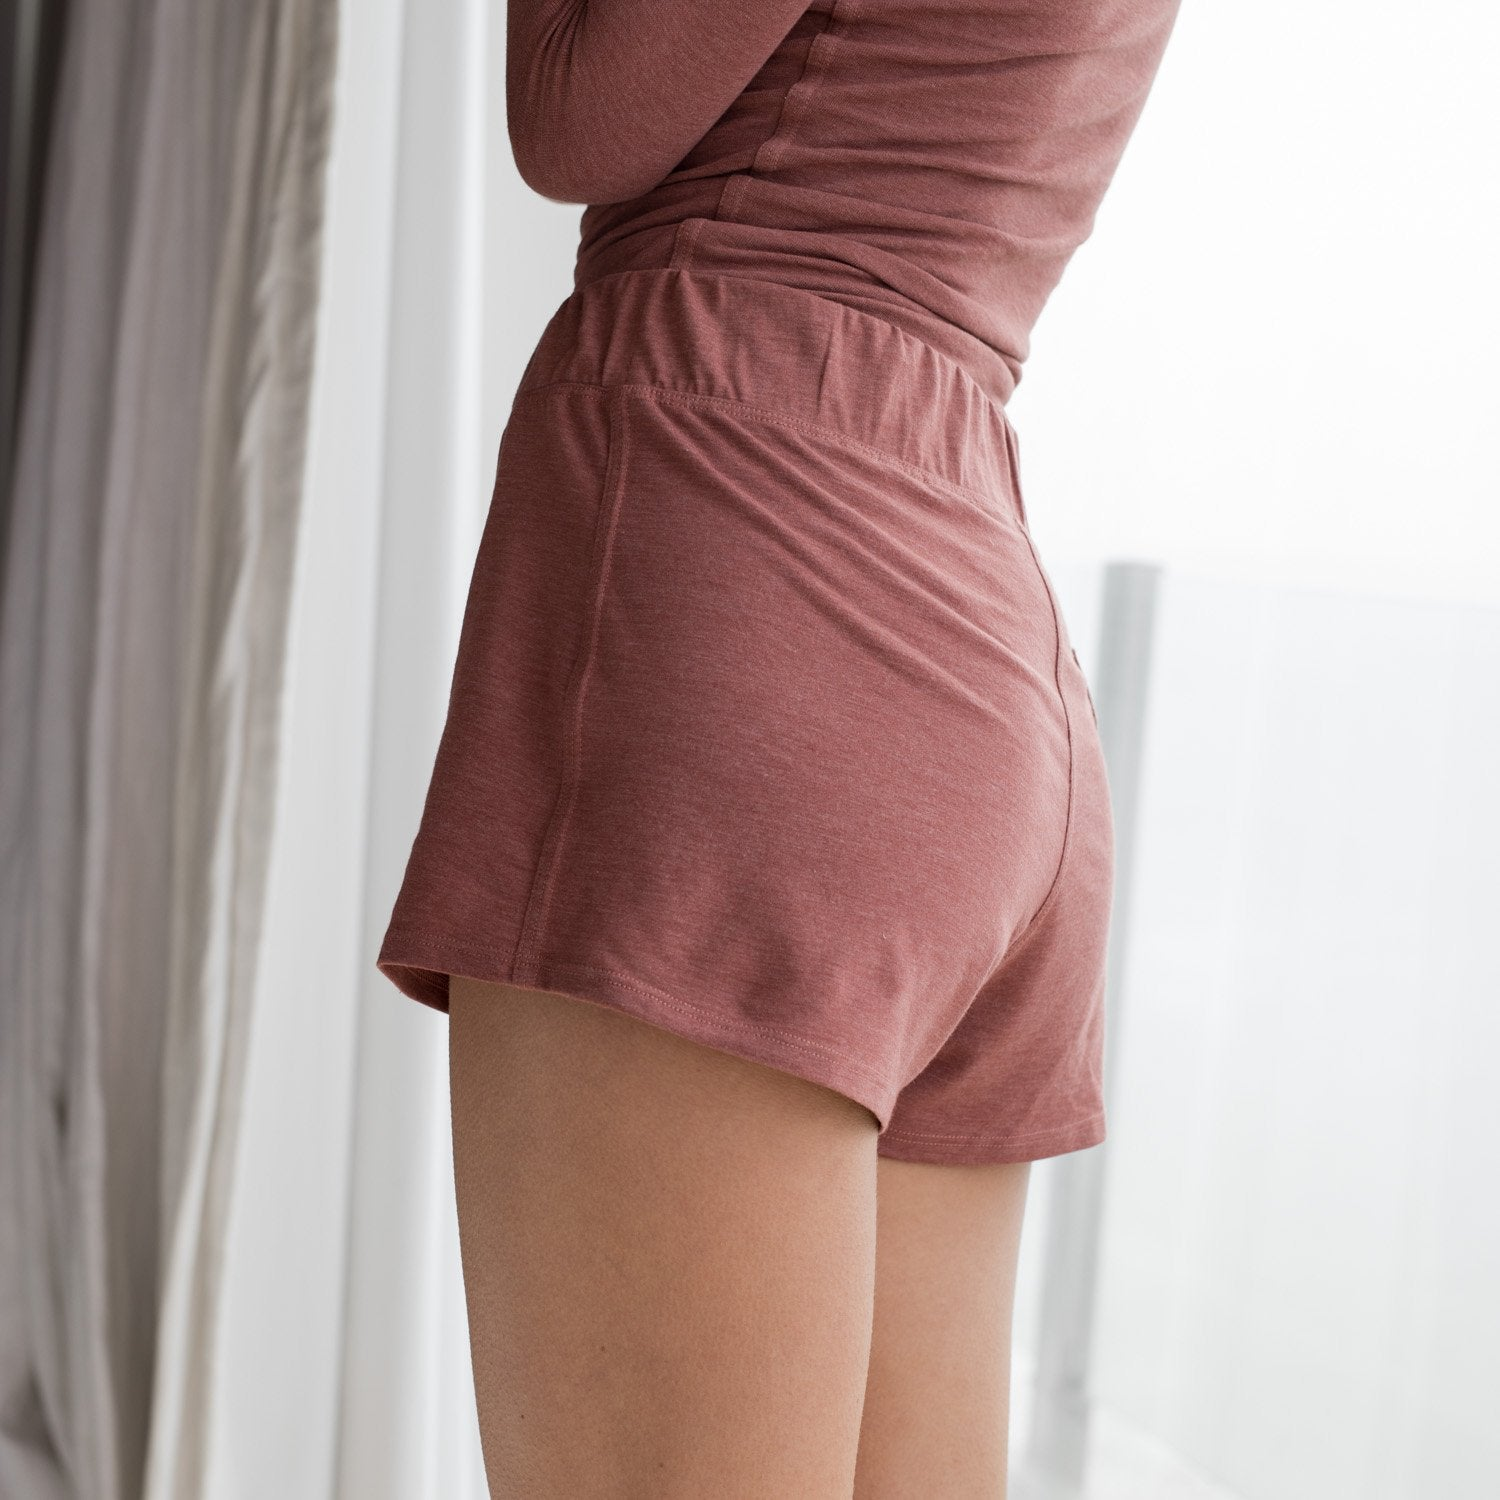 Lunya Sleepwear Restore Short - #Drift